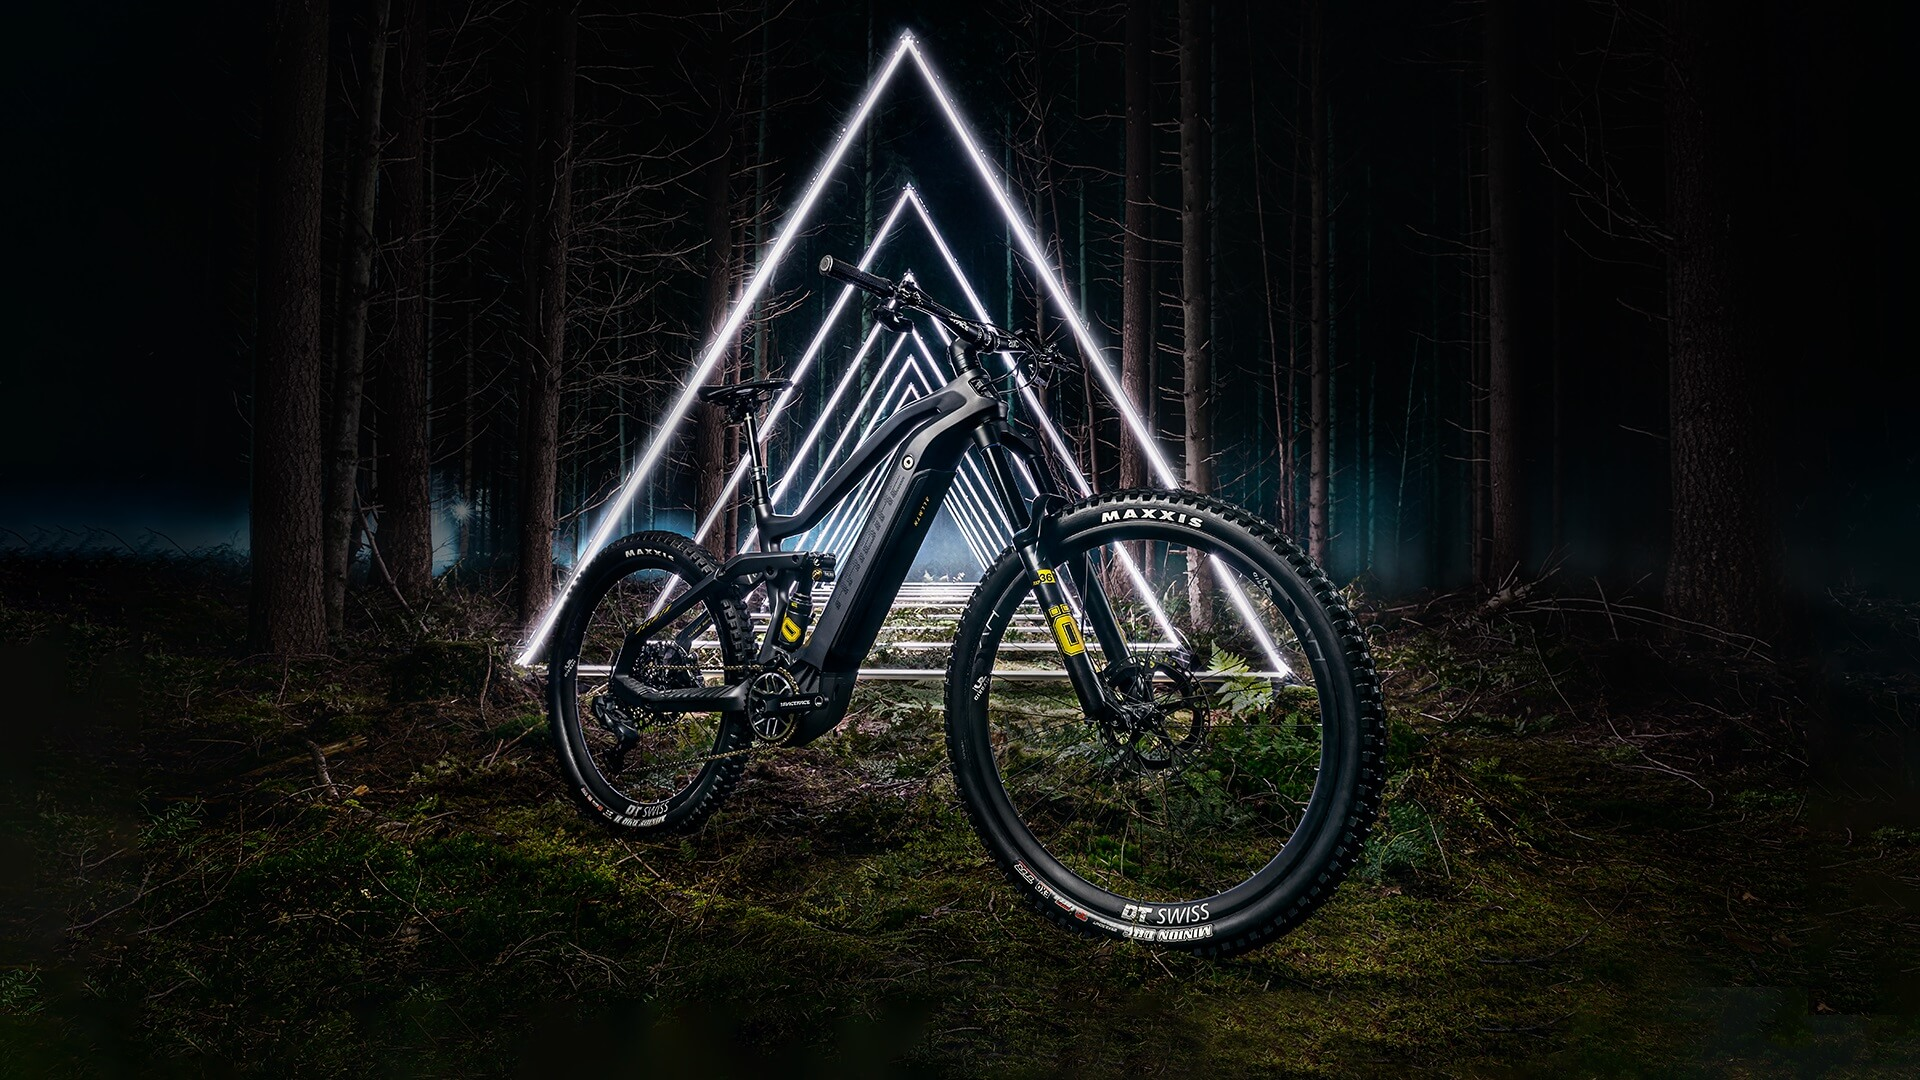 Haibike AllMtn SE in a dark forest in front of white, triangular lights